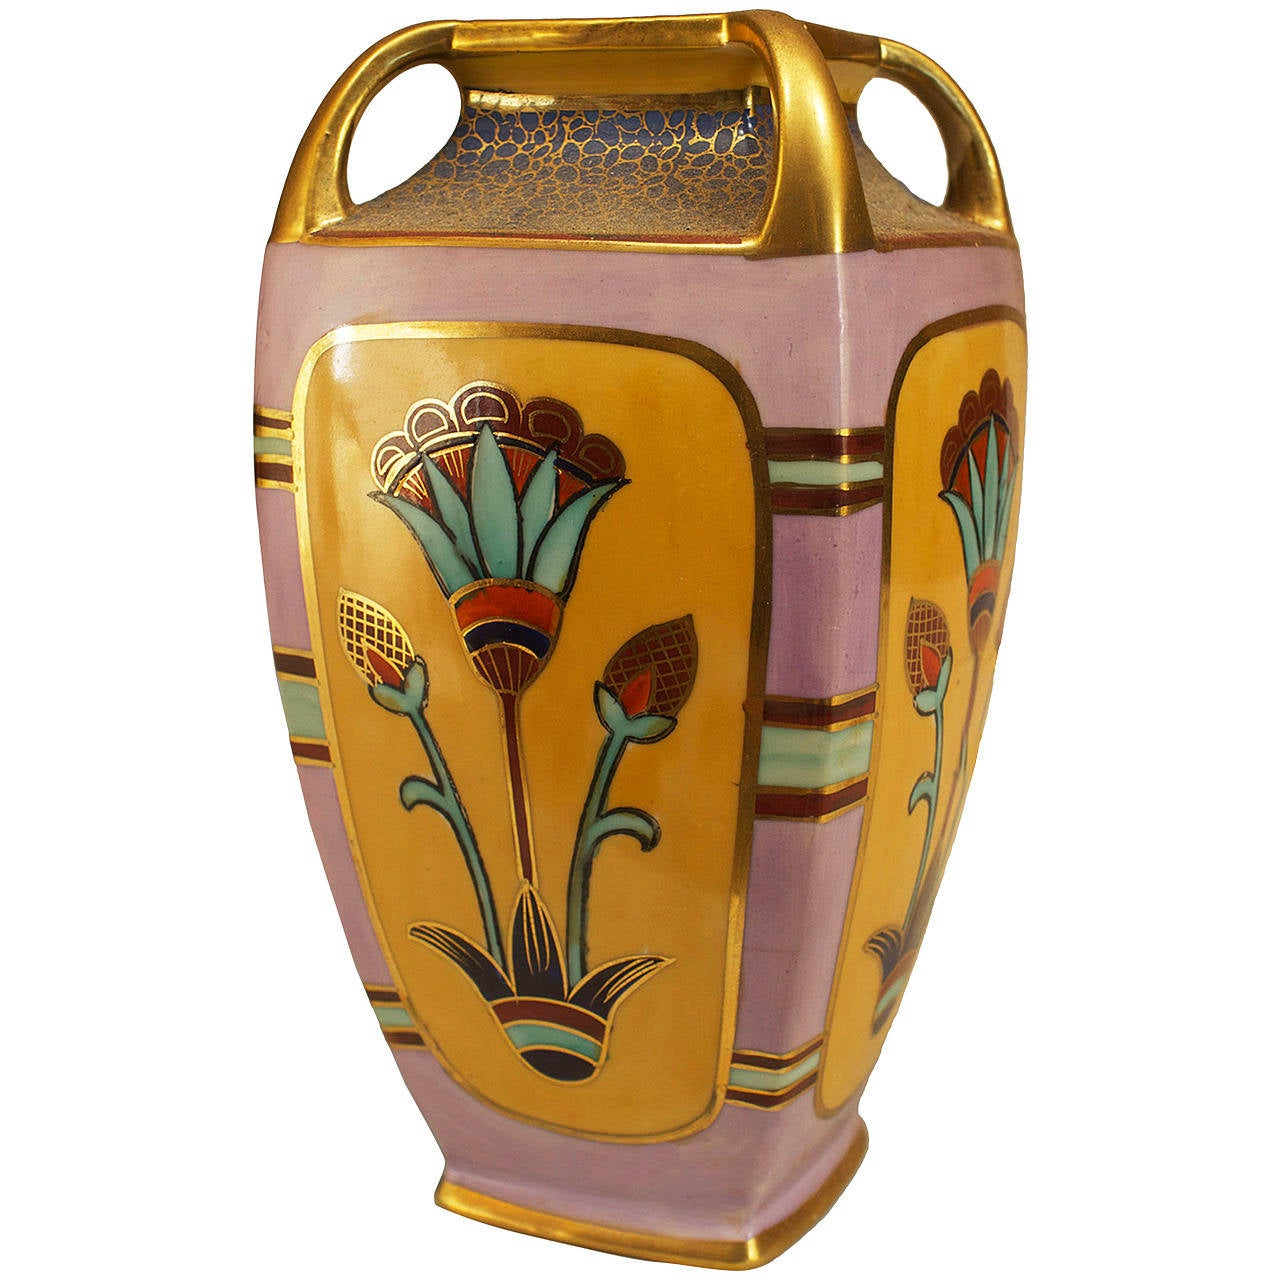 japanese art deco vase by noritake circa 1940s for sale at 1stdibs. Black Bedroom Furniture Sets. Home Design Ideas